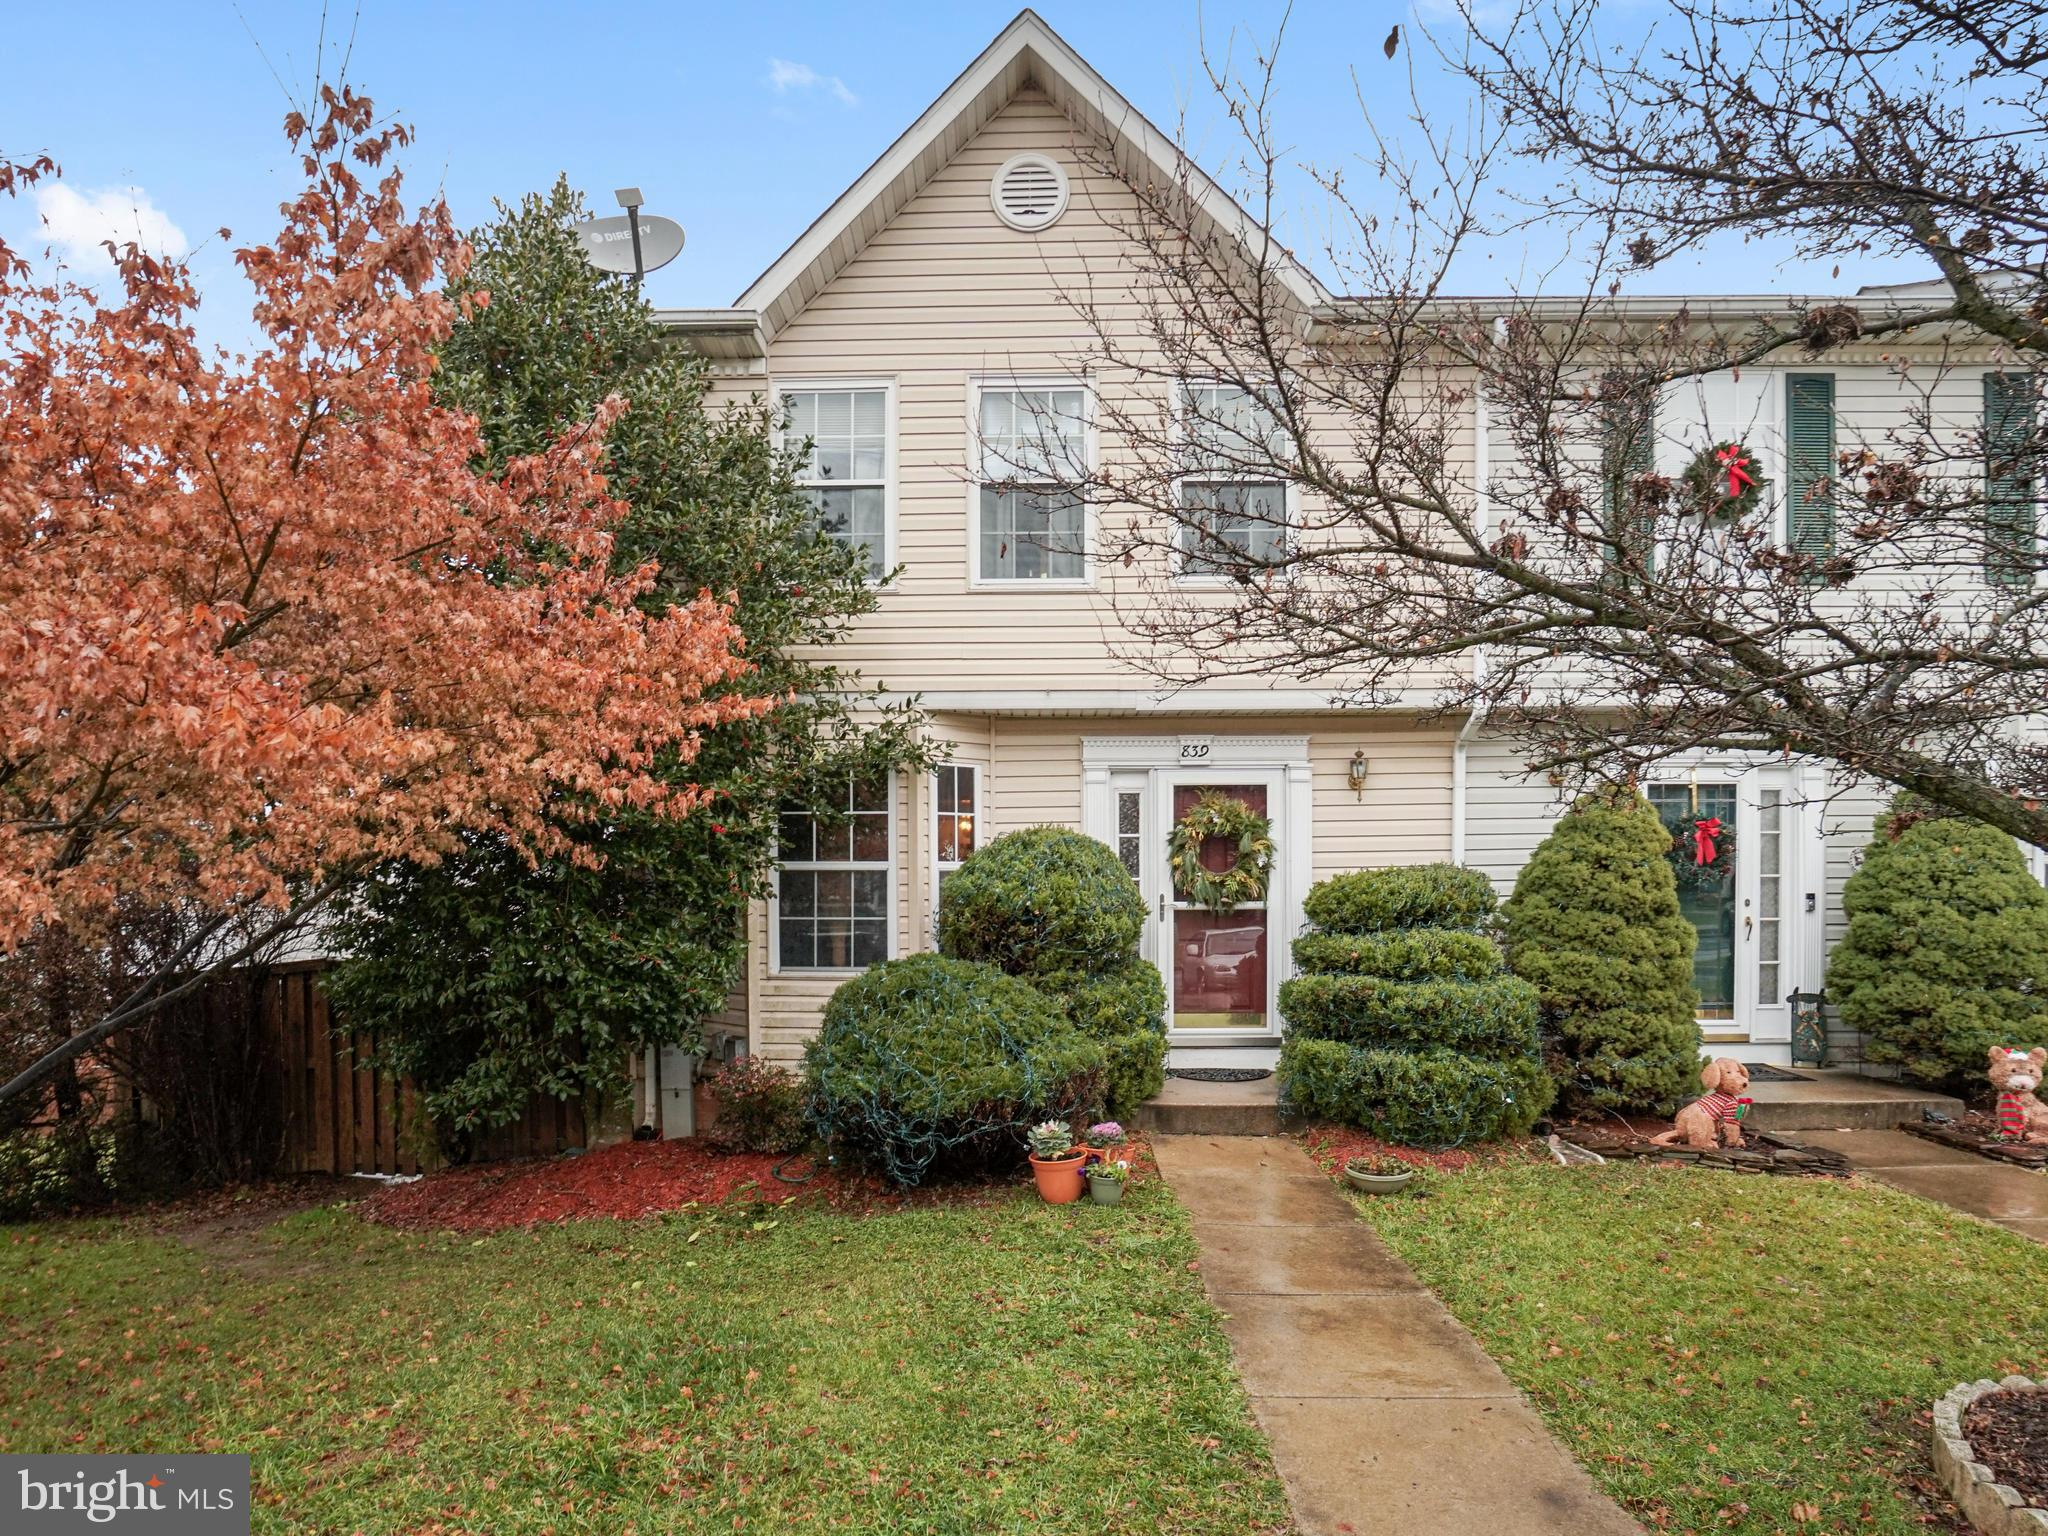 Large End-Unit TownHome 3 Bedroom, 2.5 Baths - Main Level Features Living Room And Dining Room With